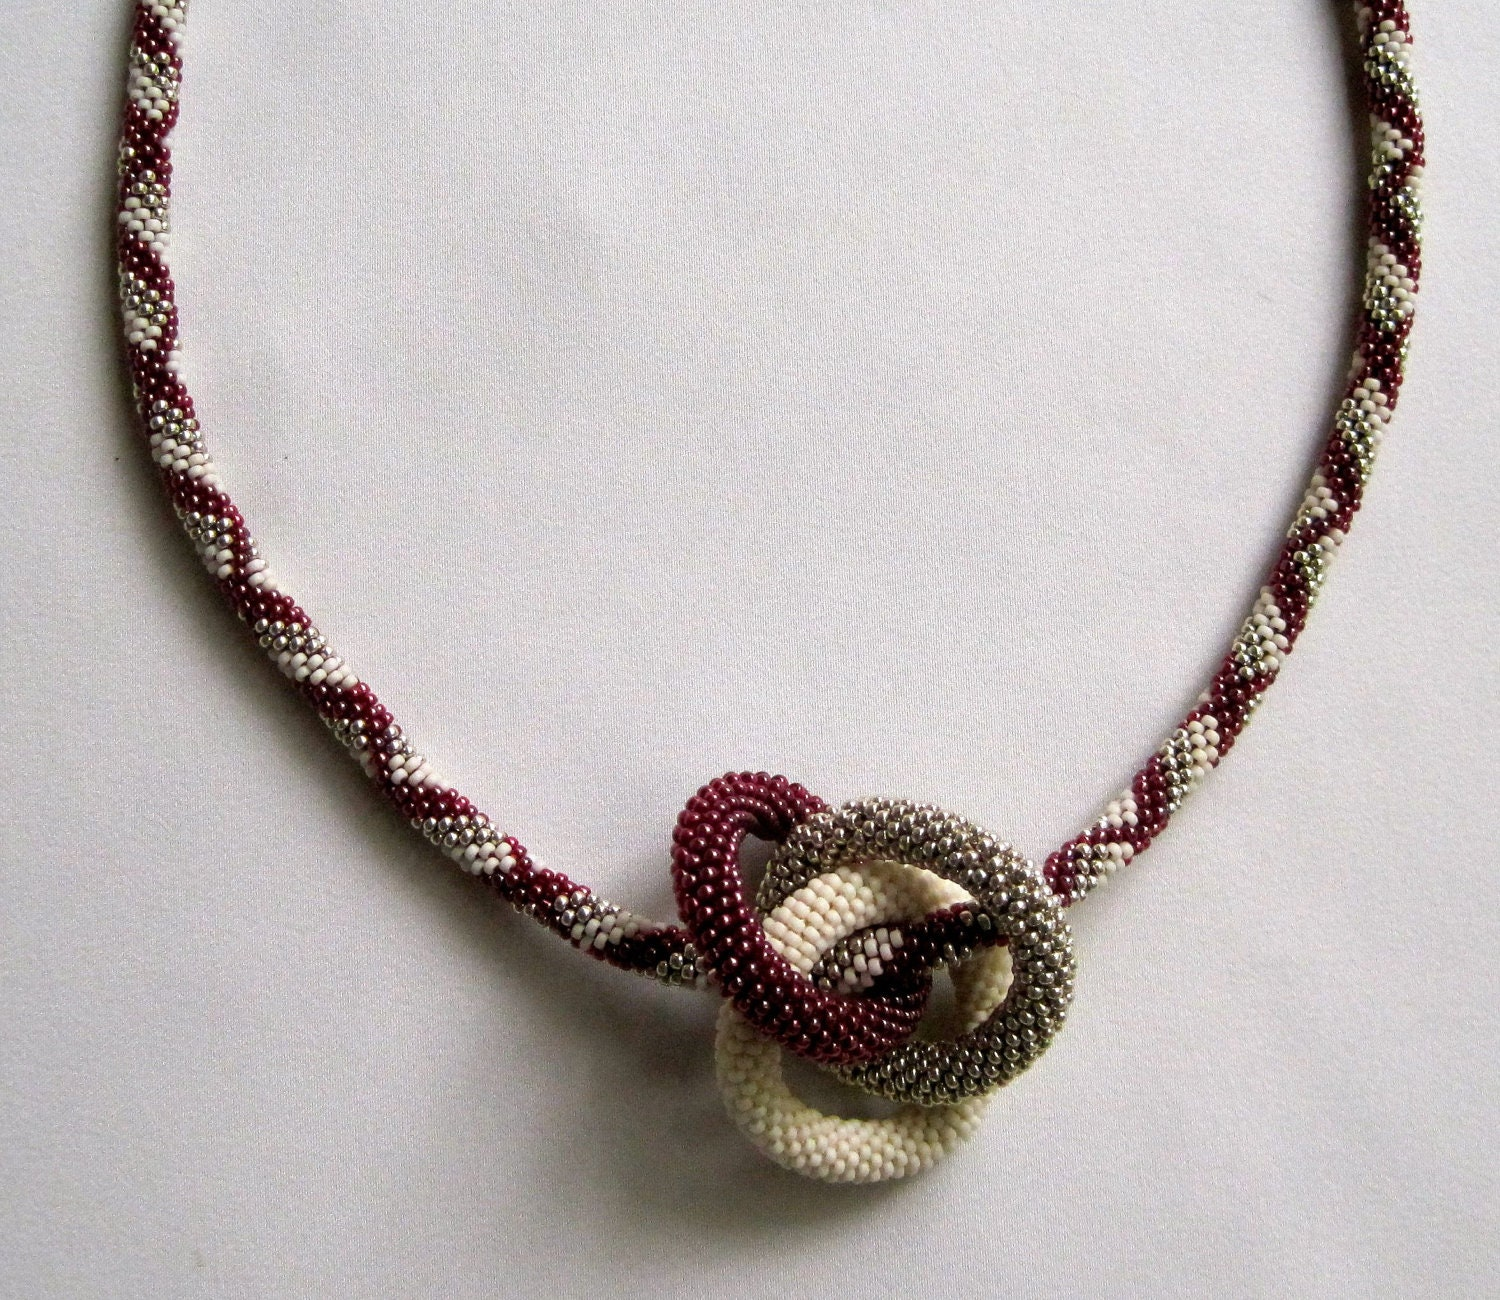 Bead Crochet Necklace Pattern: Infinity by WearableArtEmporium